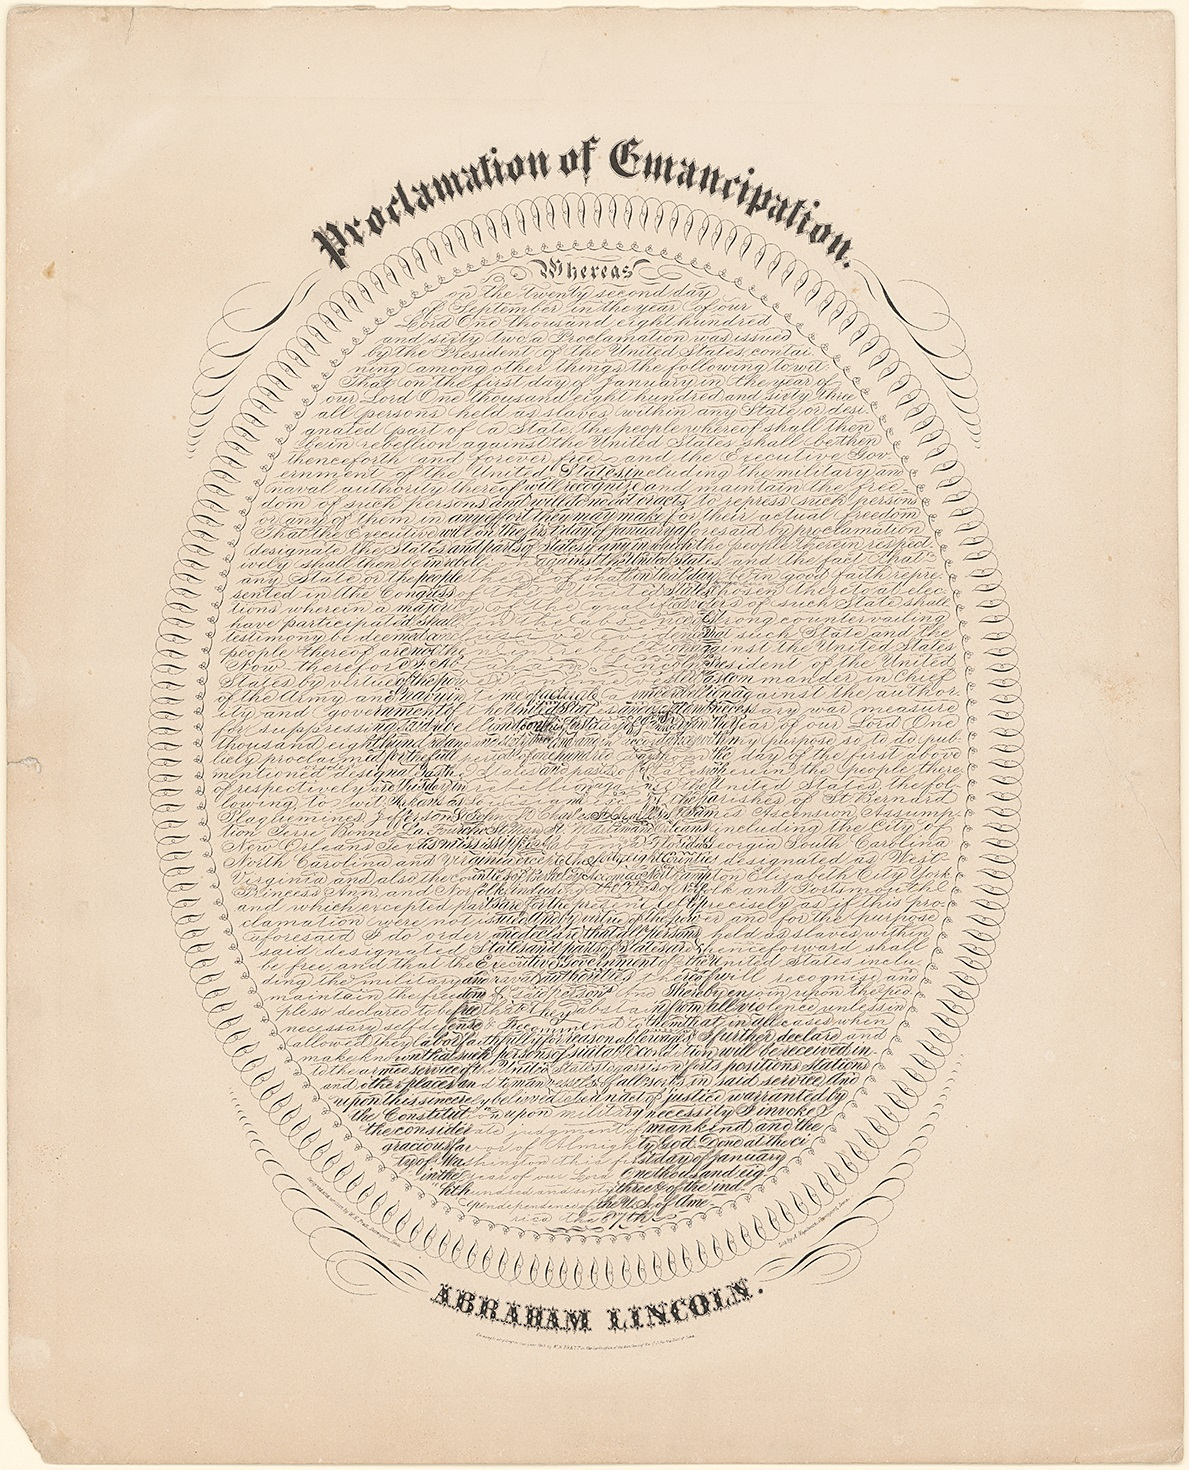 Portrait of Abraham Lincoln made up of the words of the Emancipation Proclamation